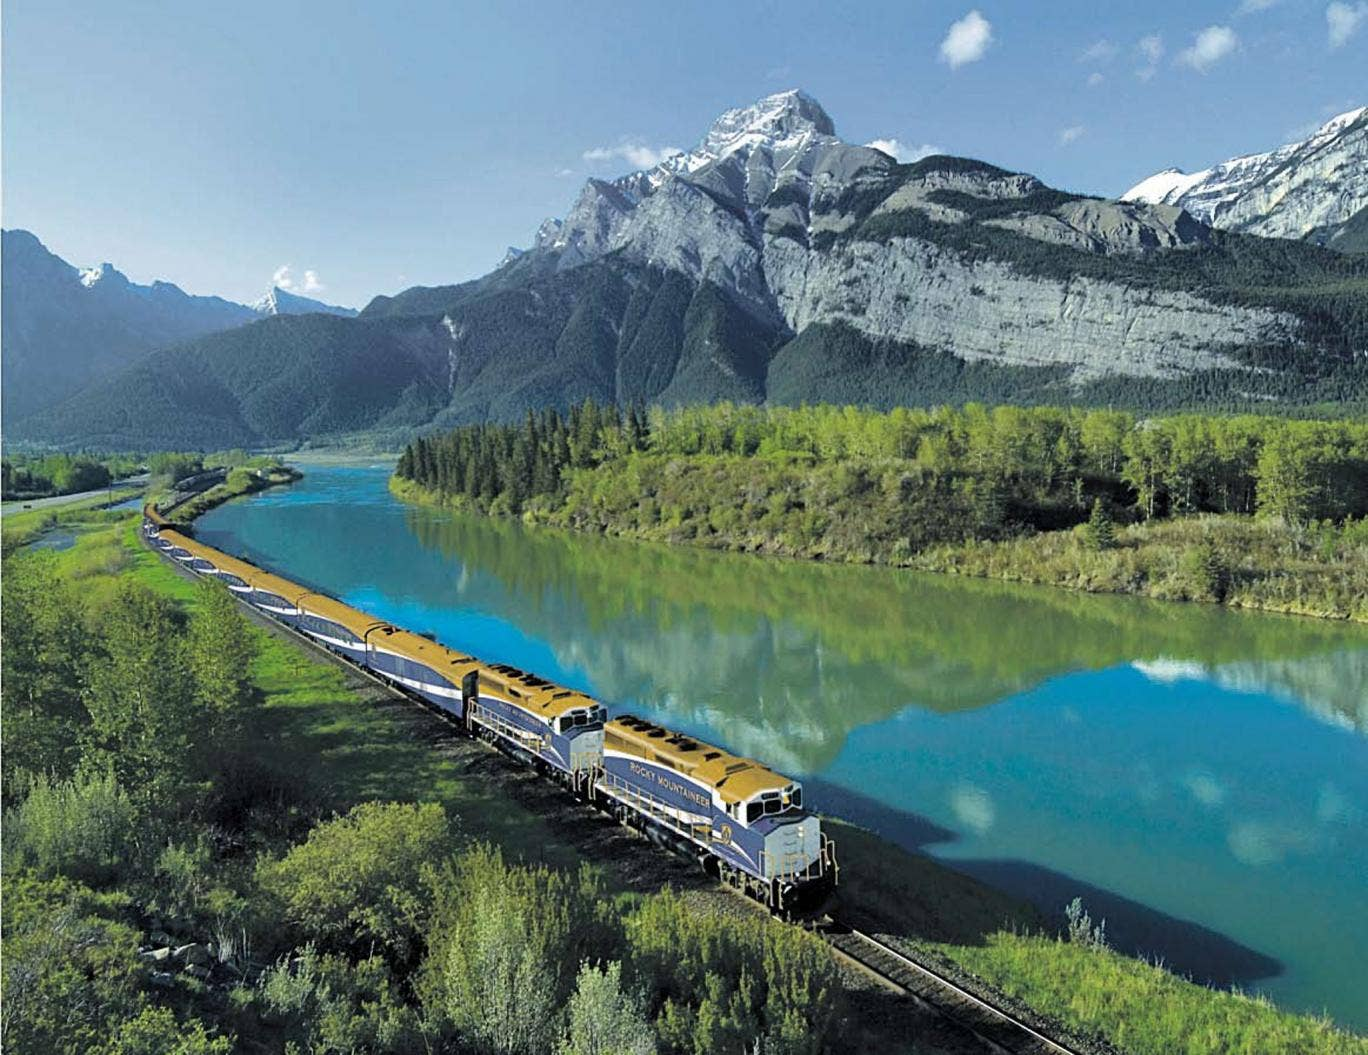 Take a train trip with The Rocky Mountaineer